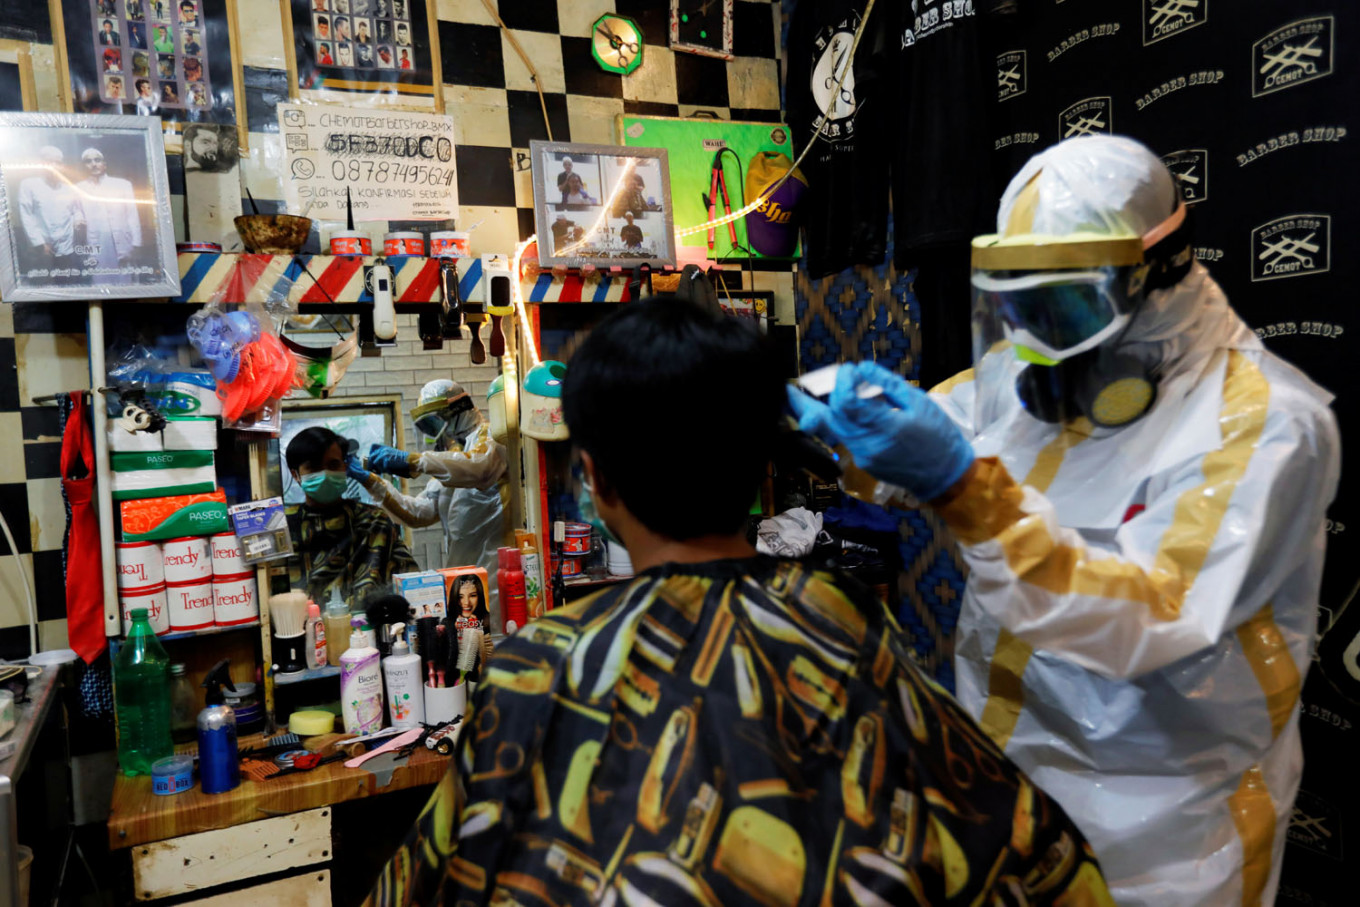 Indonesian barber gears up to groom during coronavirus - City ...